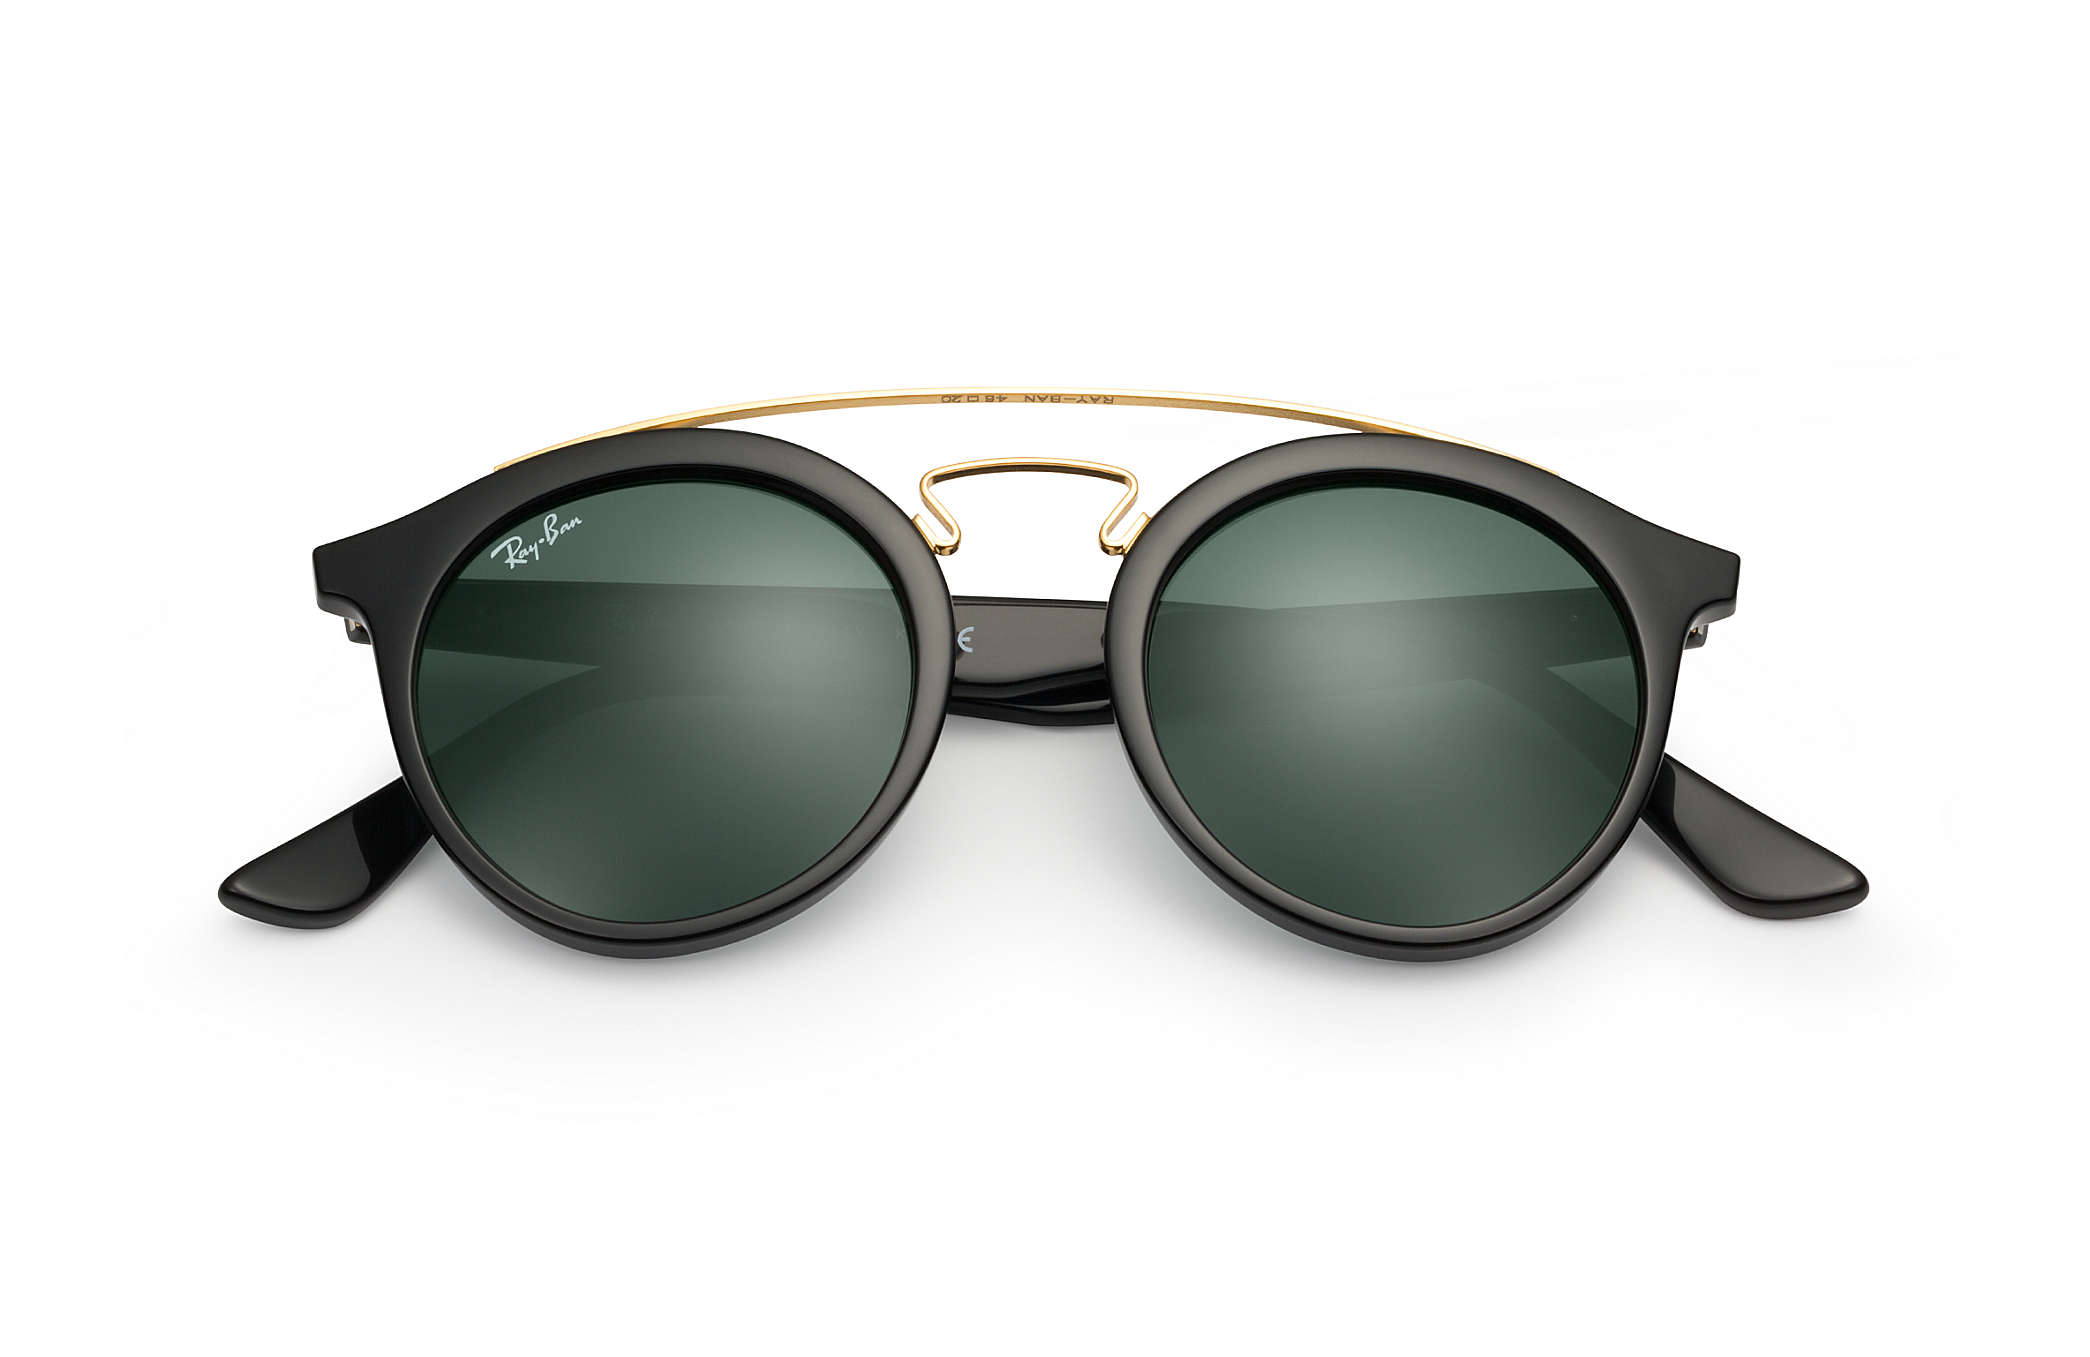 6f0d556792 Ray-Ban RB4256 Negro - Propionate - Lentes Verde - 0RB4256601/7149 ...